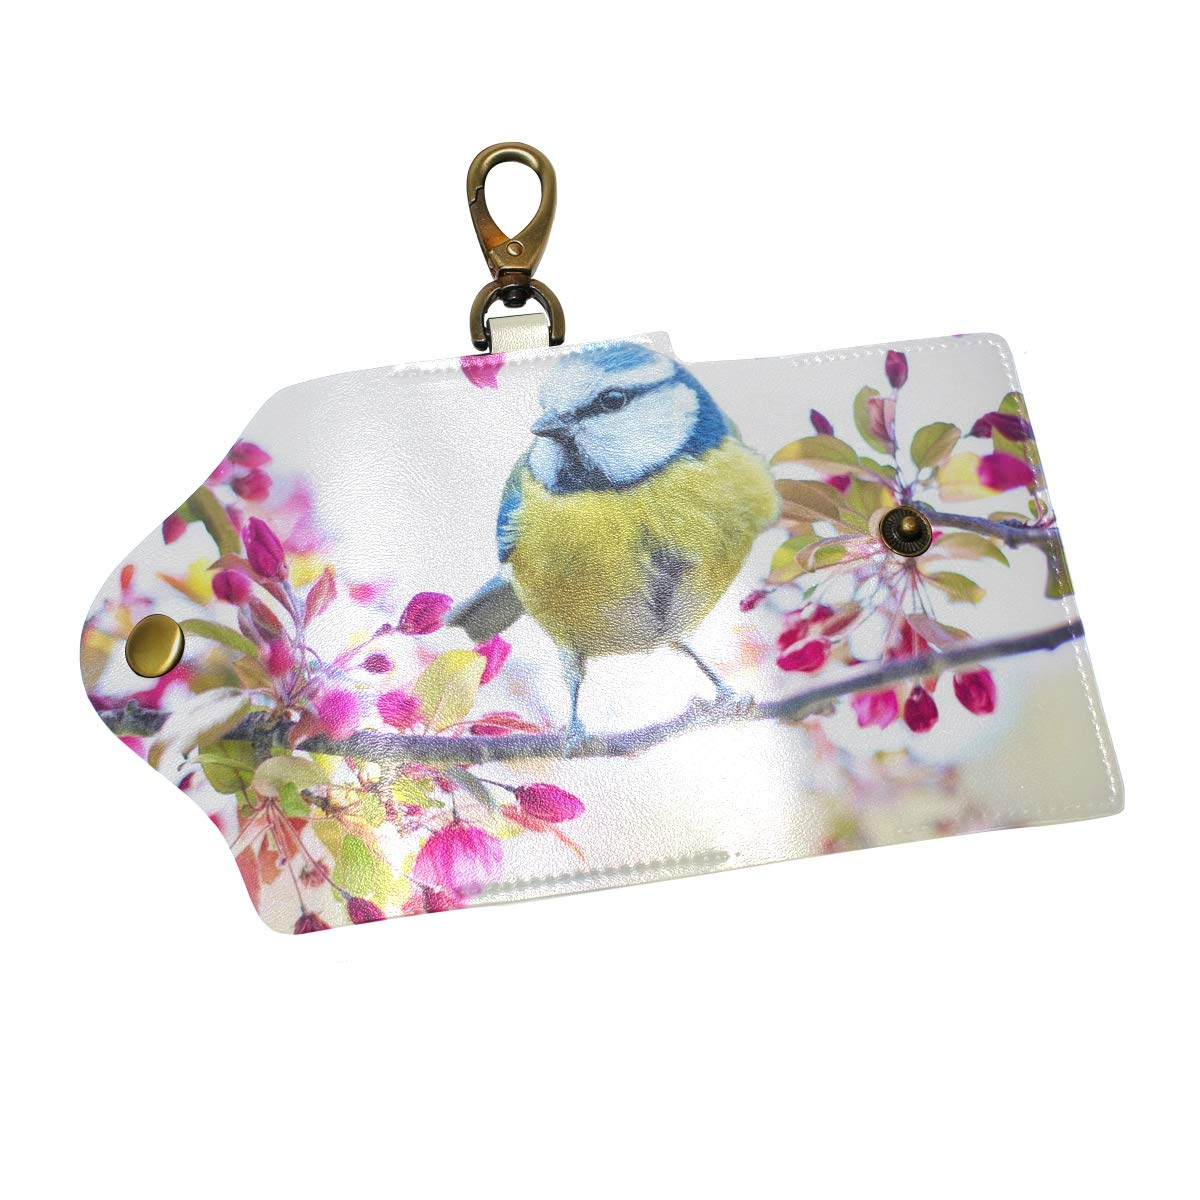 KEAKIA Spring Bird Leather Key Case Wallets Tri-fold Key Holder Keychains with 6 Hooks 2 Slot Snap Closure for Men Women